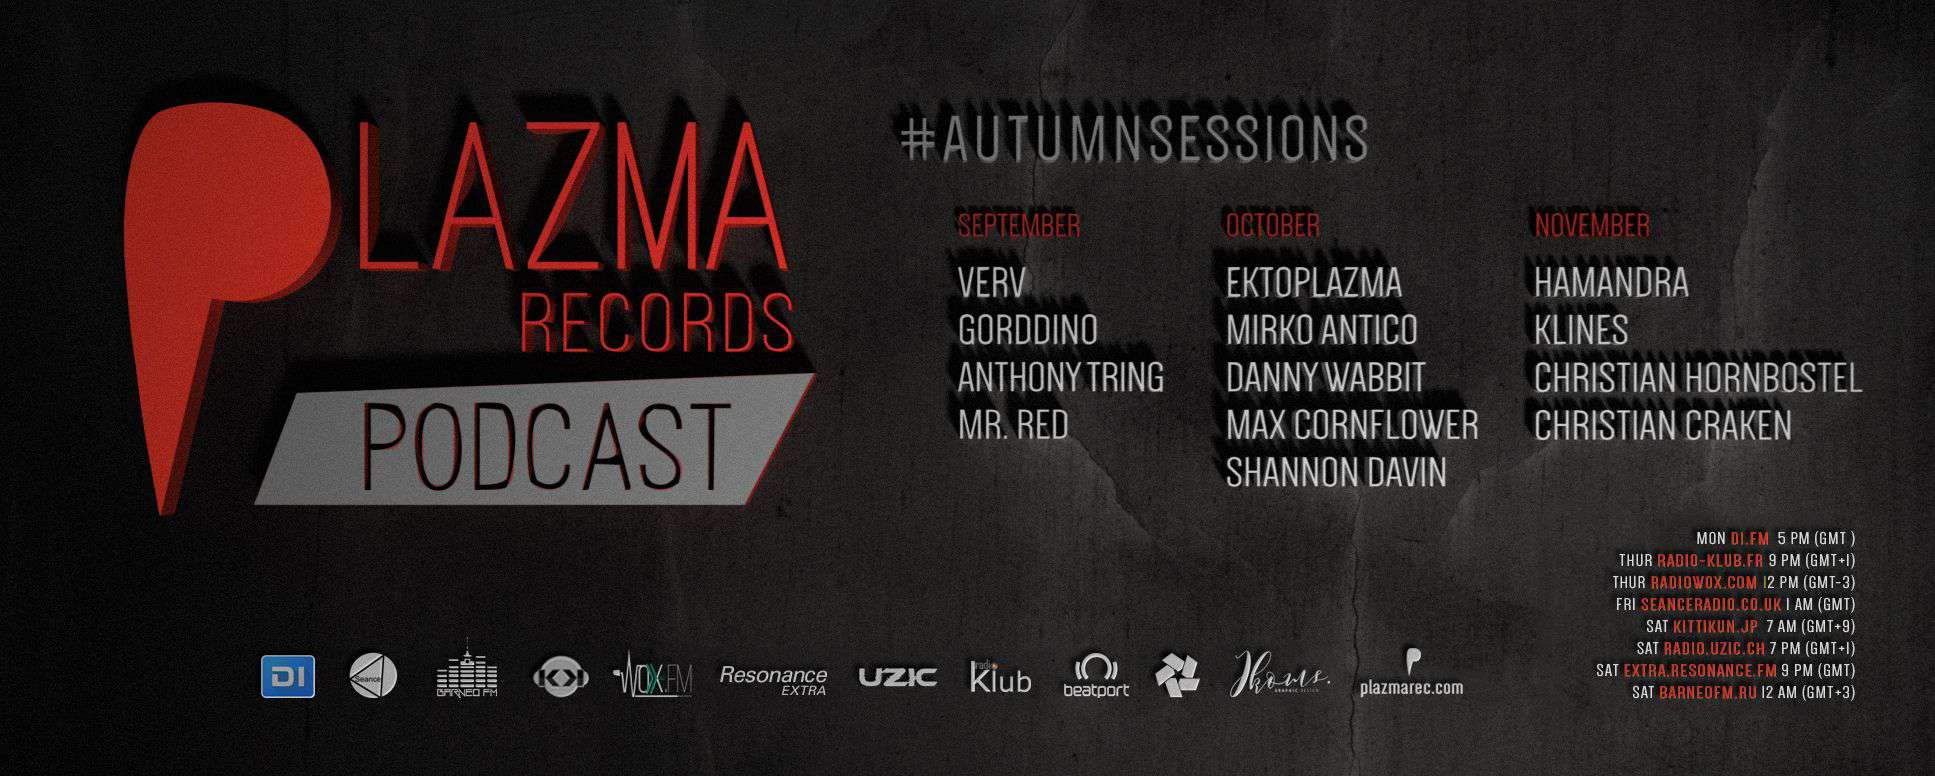 Plazma Records Podcast | Autumn Sessions'18